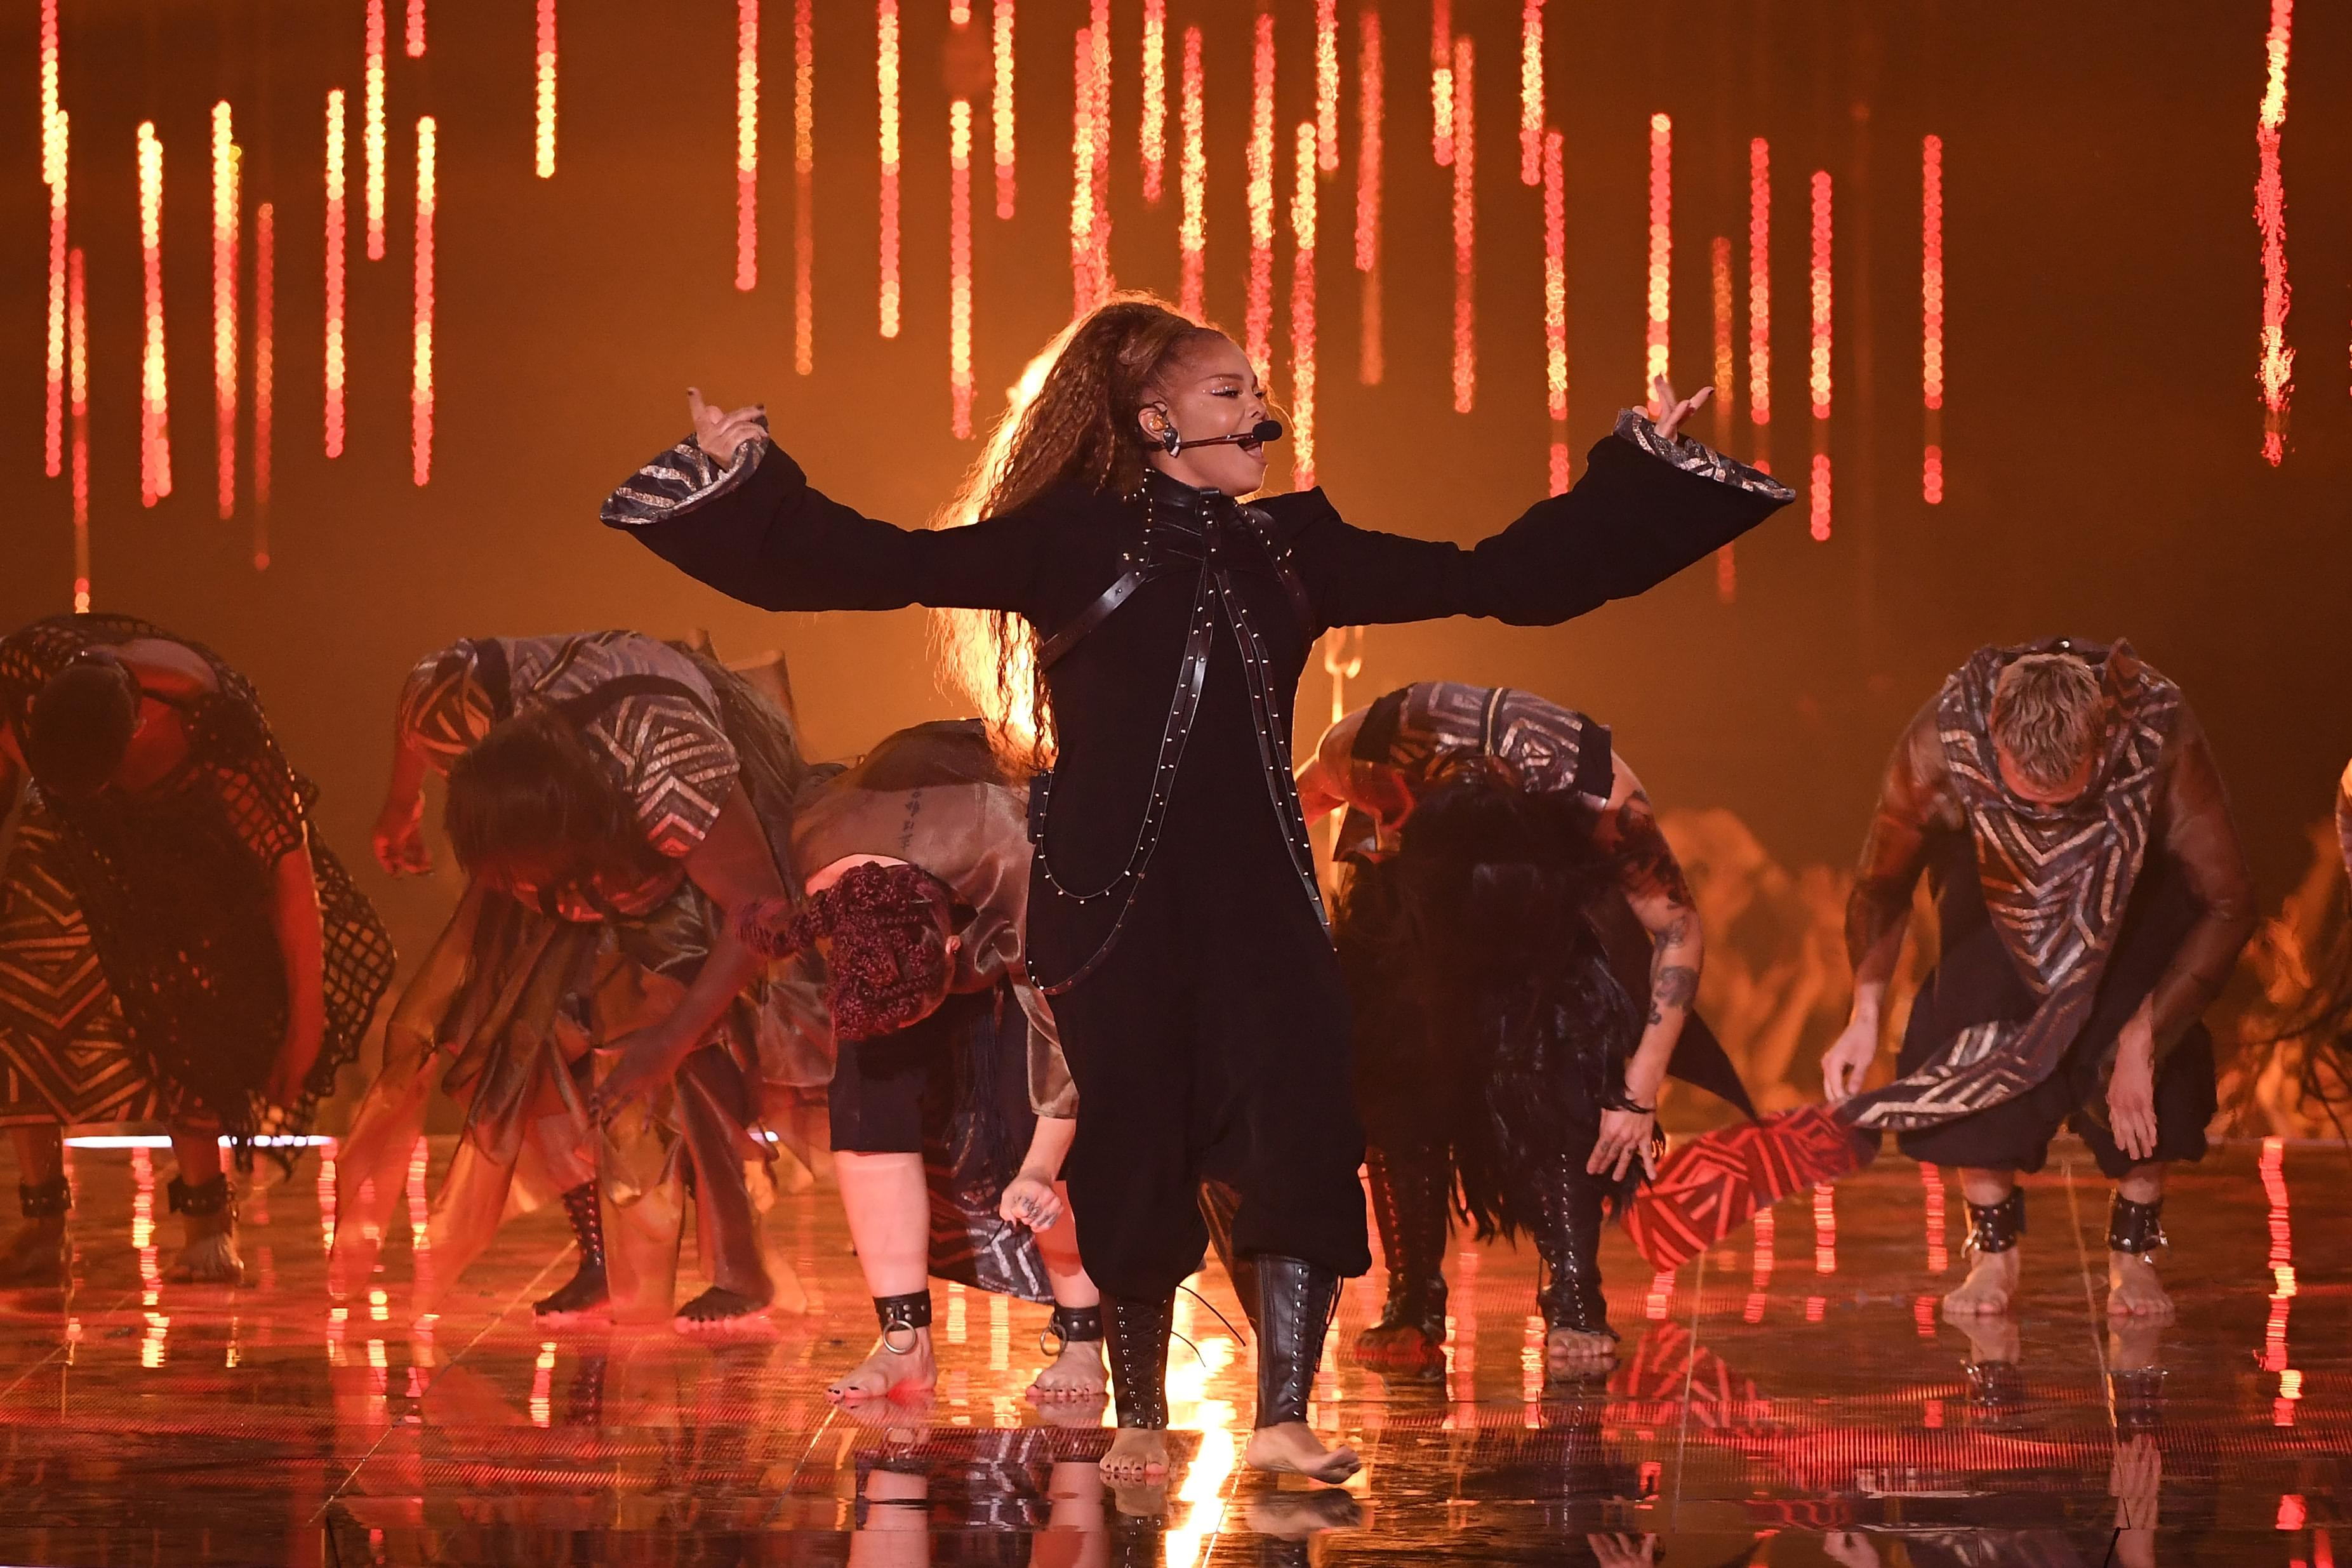 Janet Jackson To Be Inducted Into Rock and Roll Hall of Fame